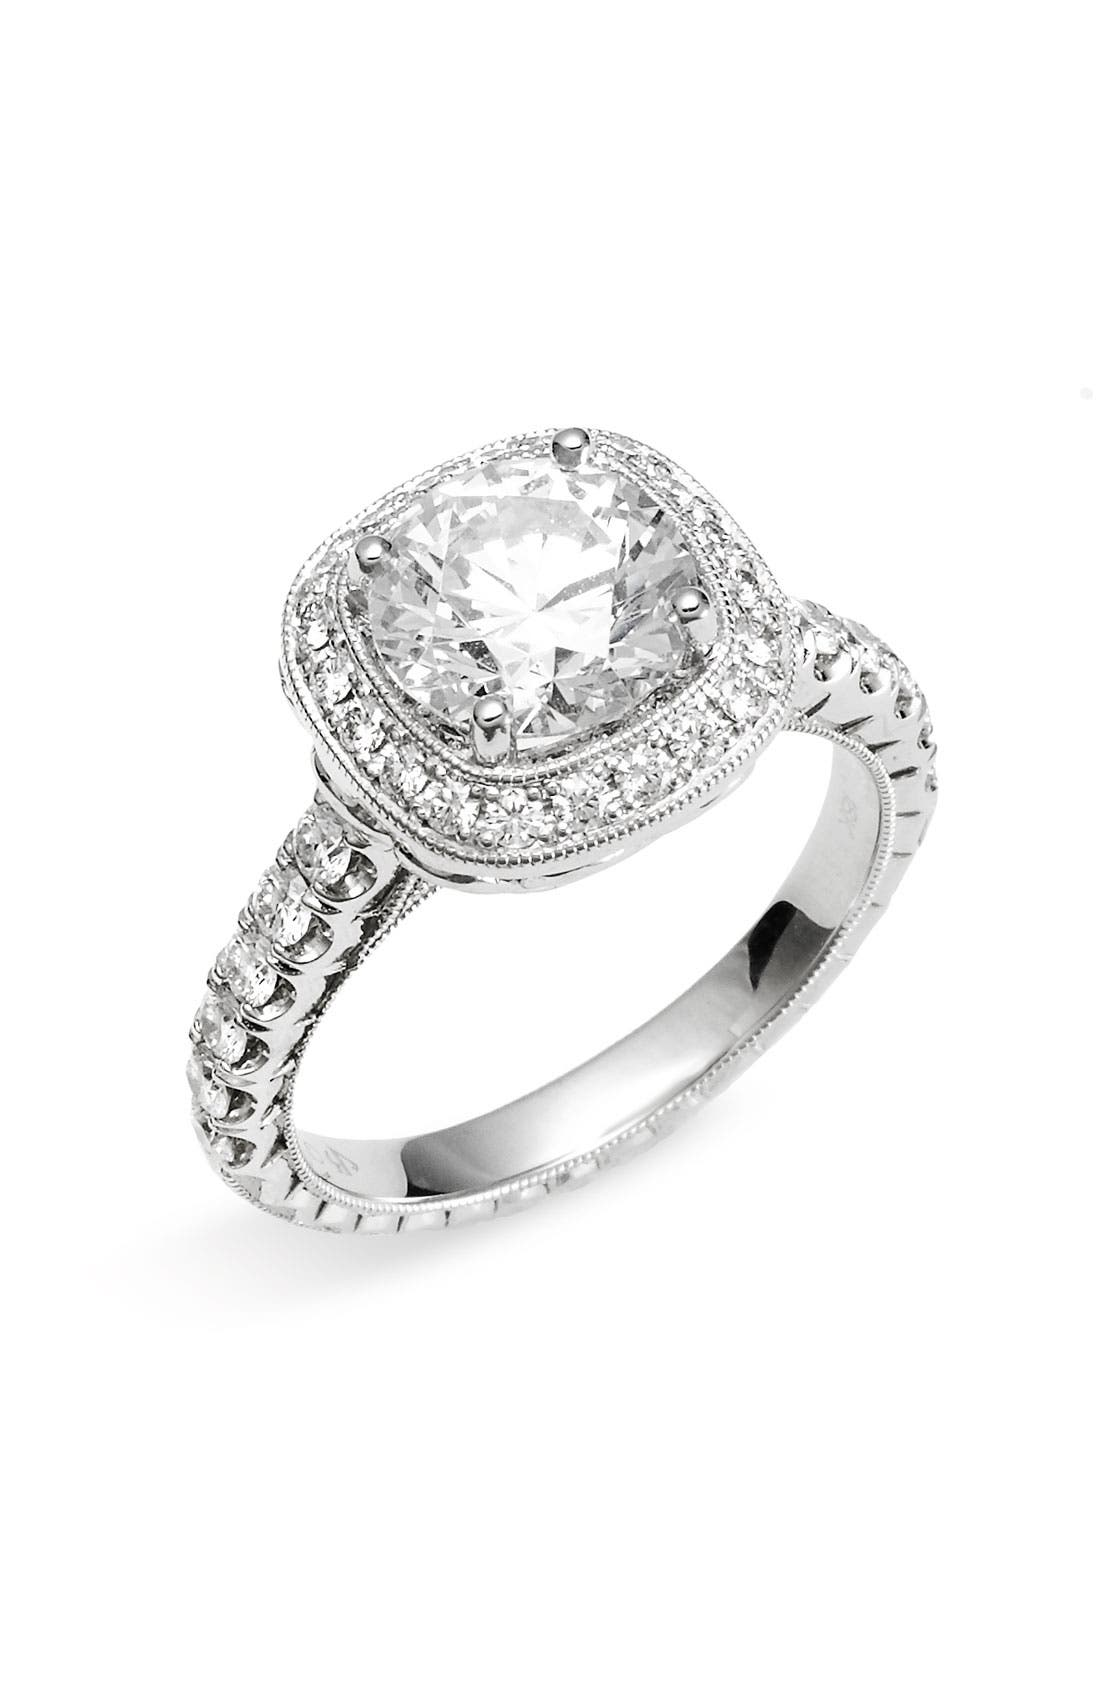 Main Image - Jack Kelége 'Romance' Cushion Set Diamond Engagement Ring Setting